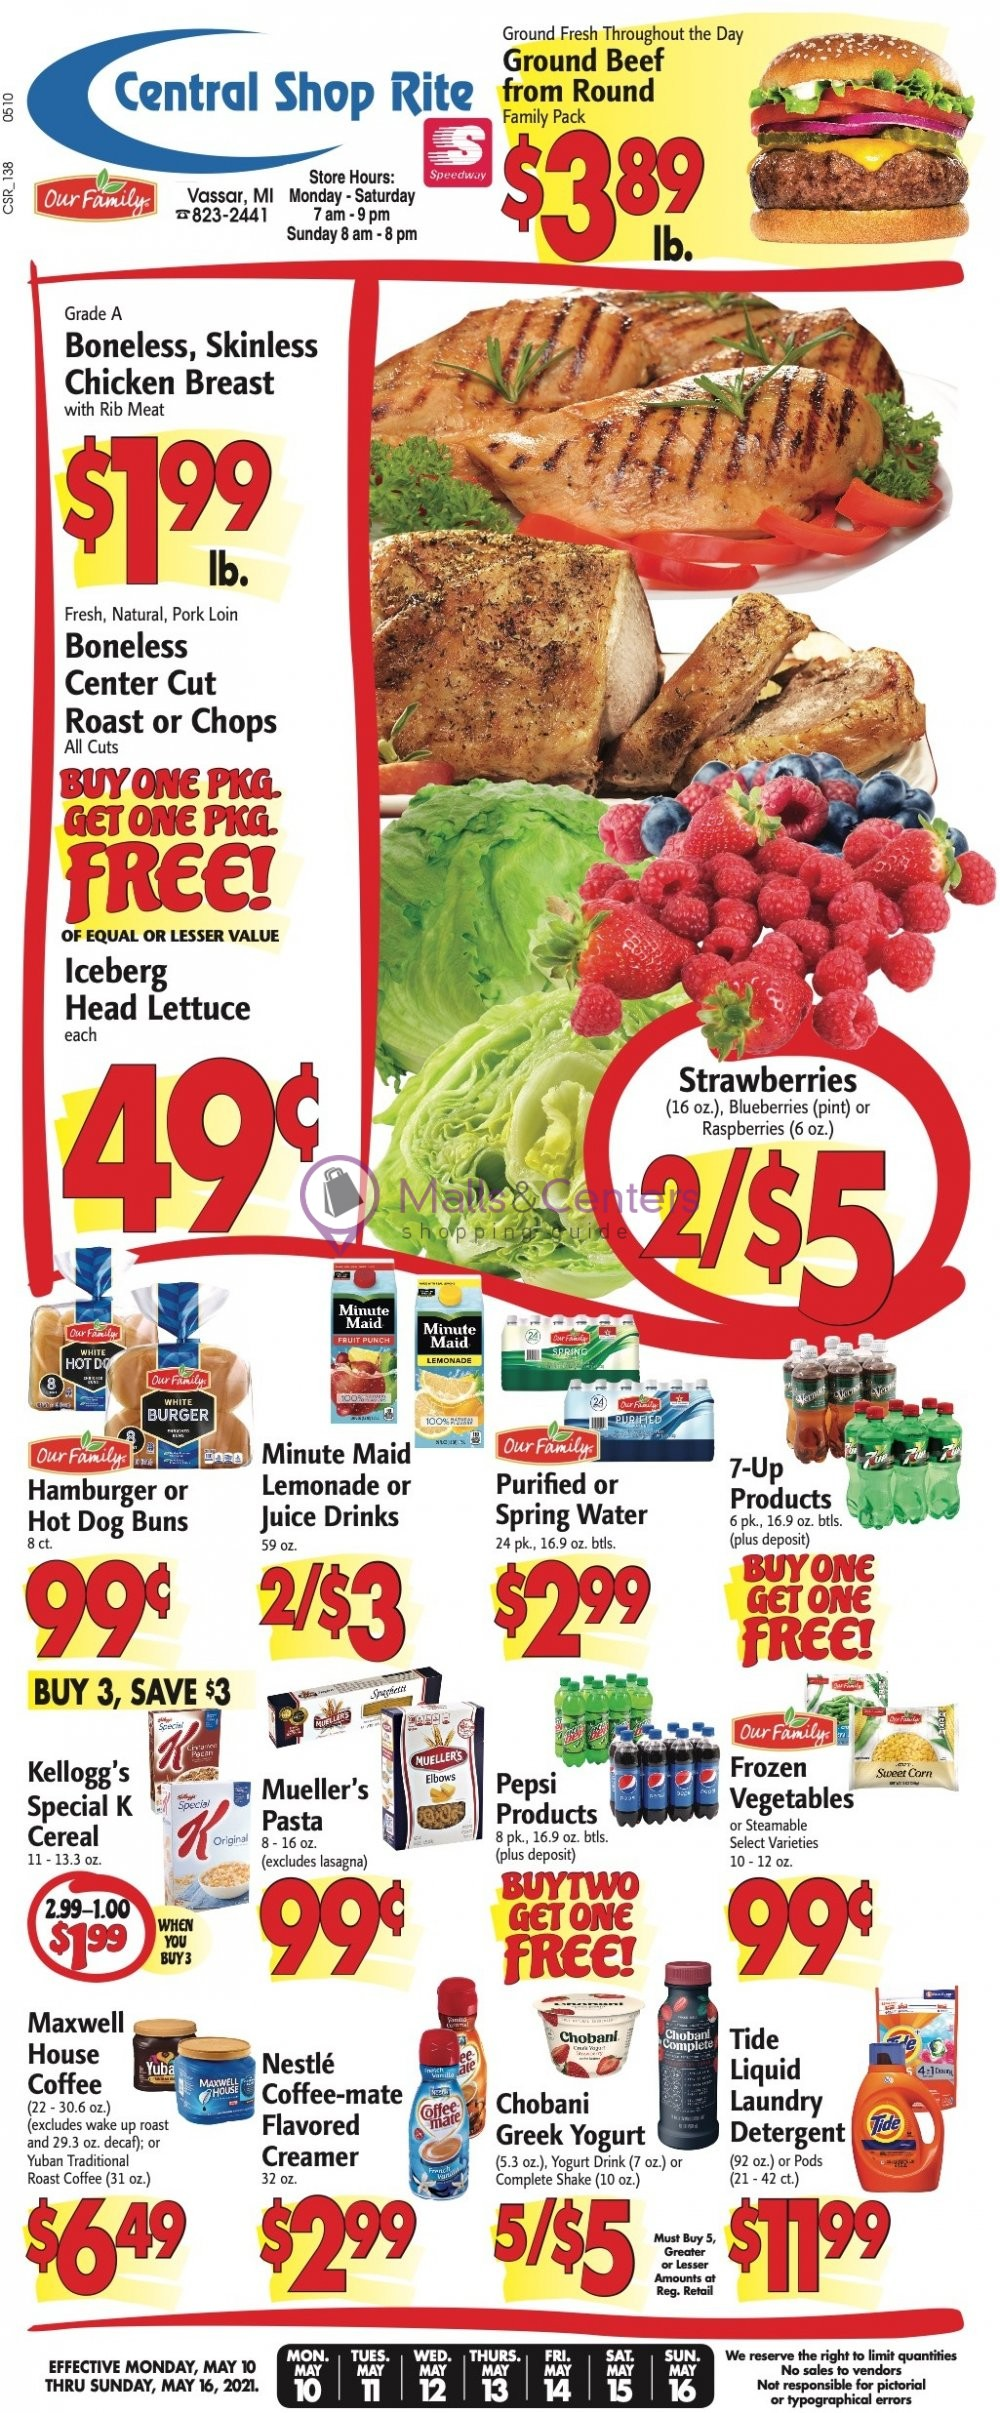 weekly ads Central Shop Rite - page 1 - mallscenters.com